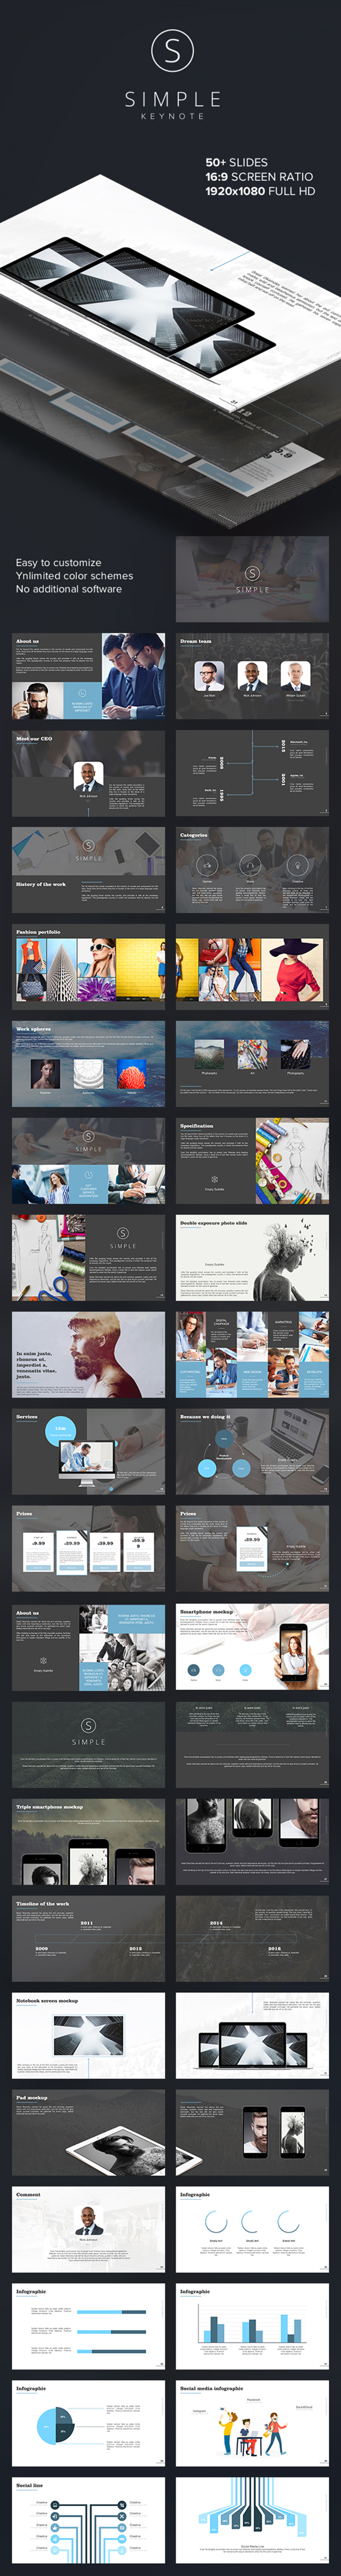 GraphicRiver Simple Multipurpose Business Keynote Template 20483859